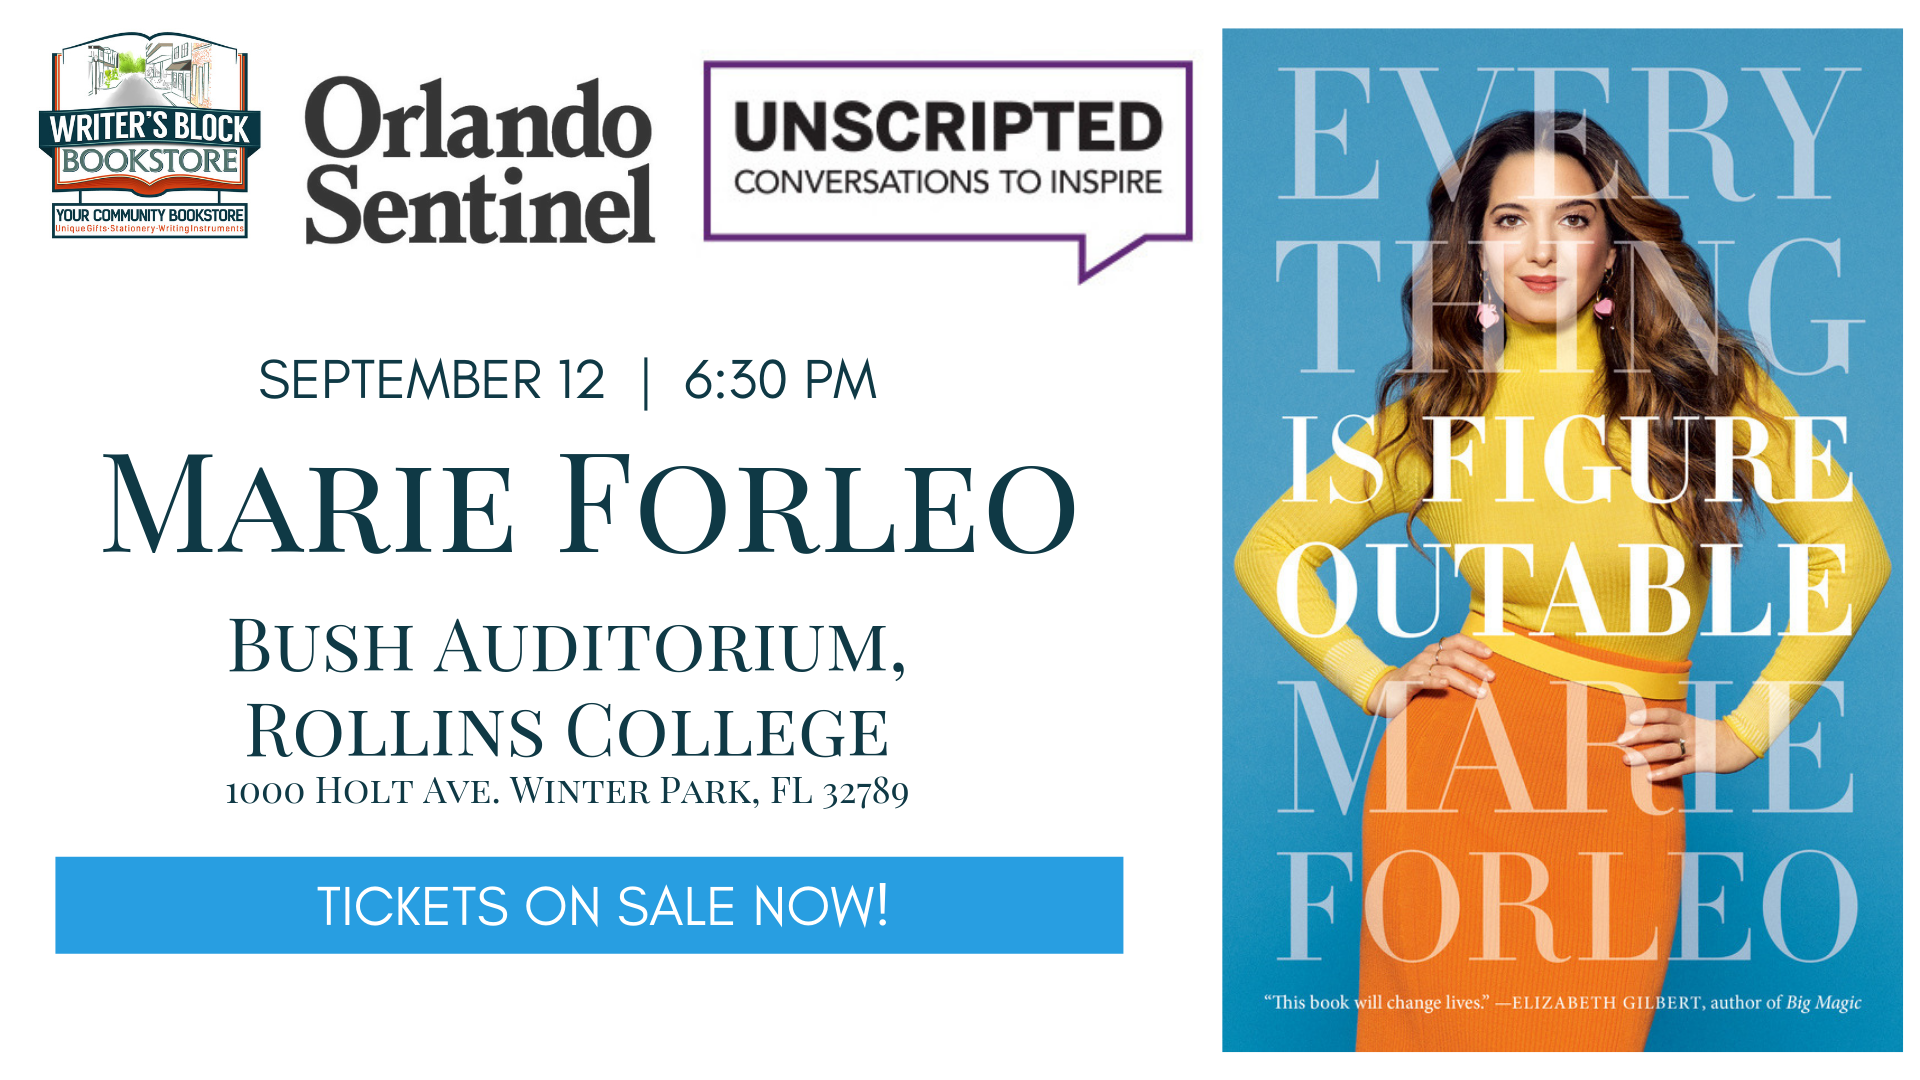 Unscripted Series featuring Marie Forleo at Rollins College